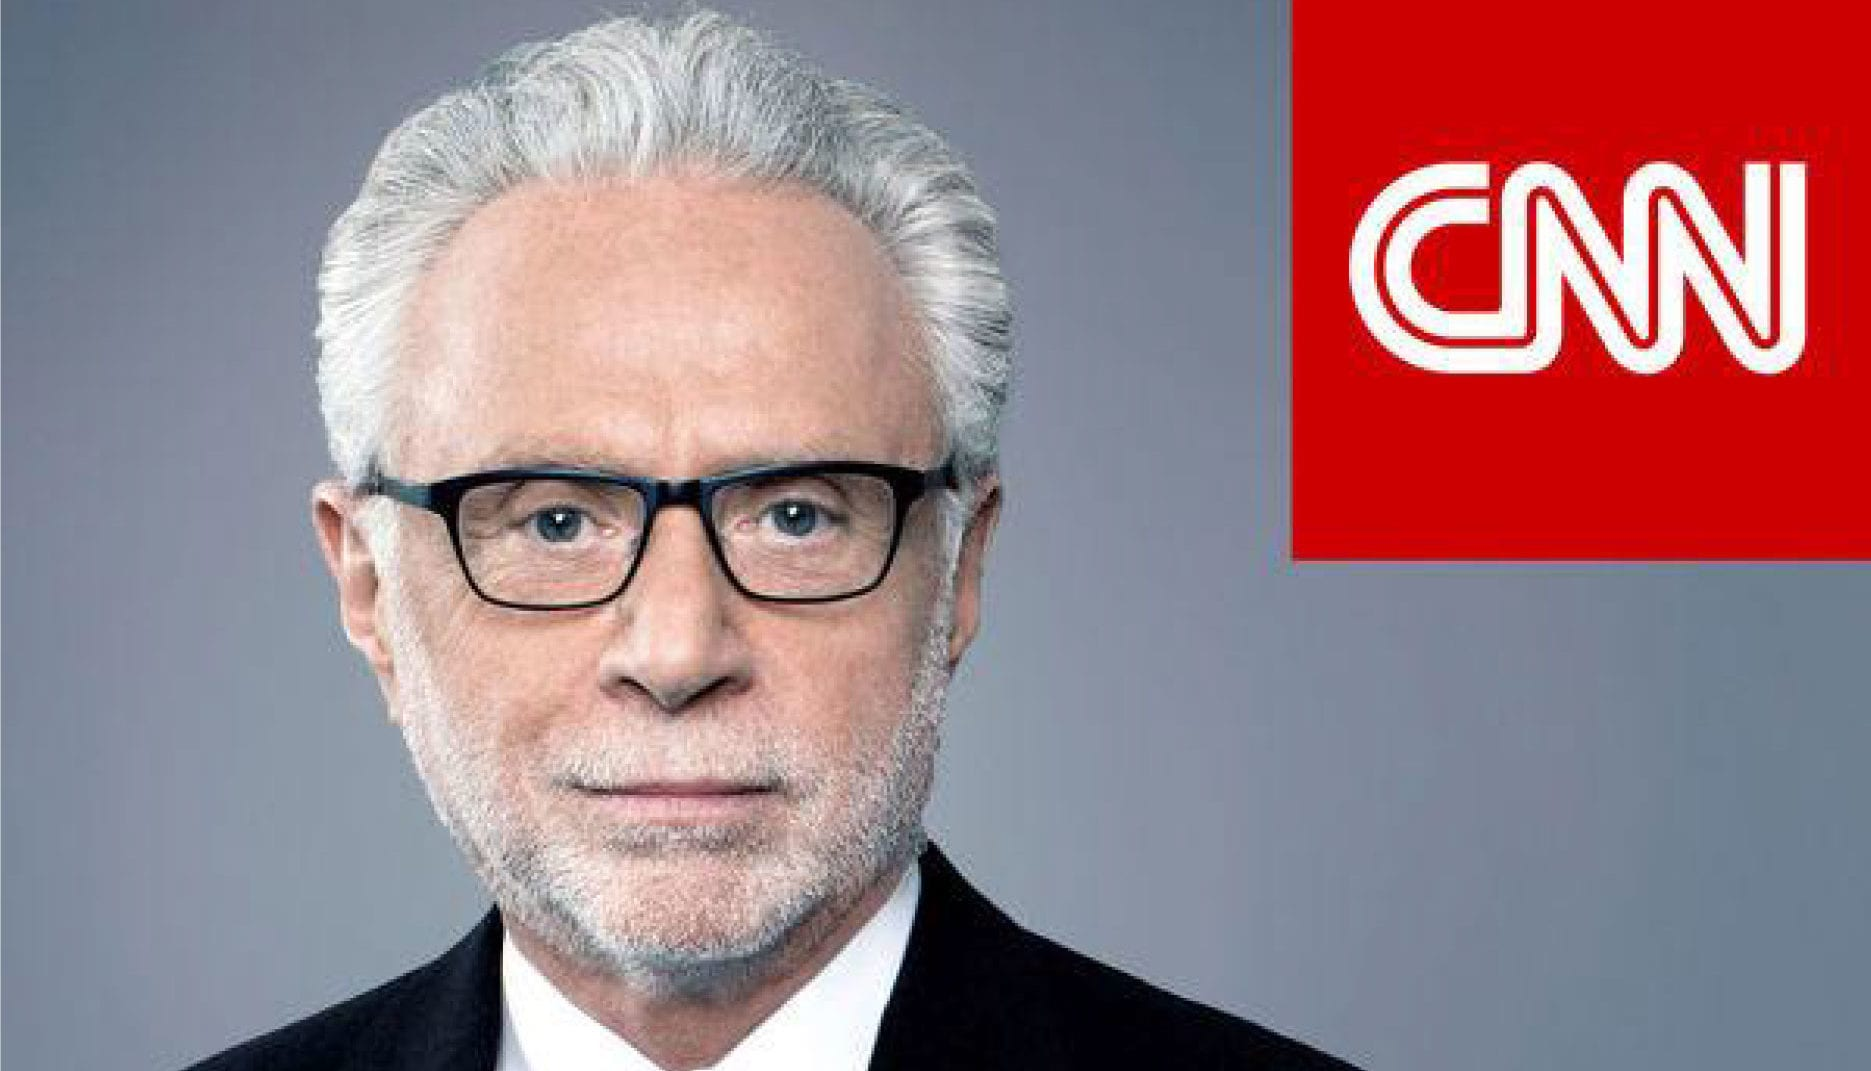 Cnn Announces New Show The Emergency Room With Wolf